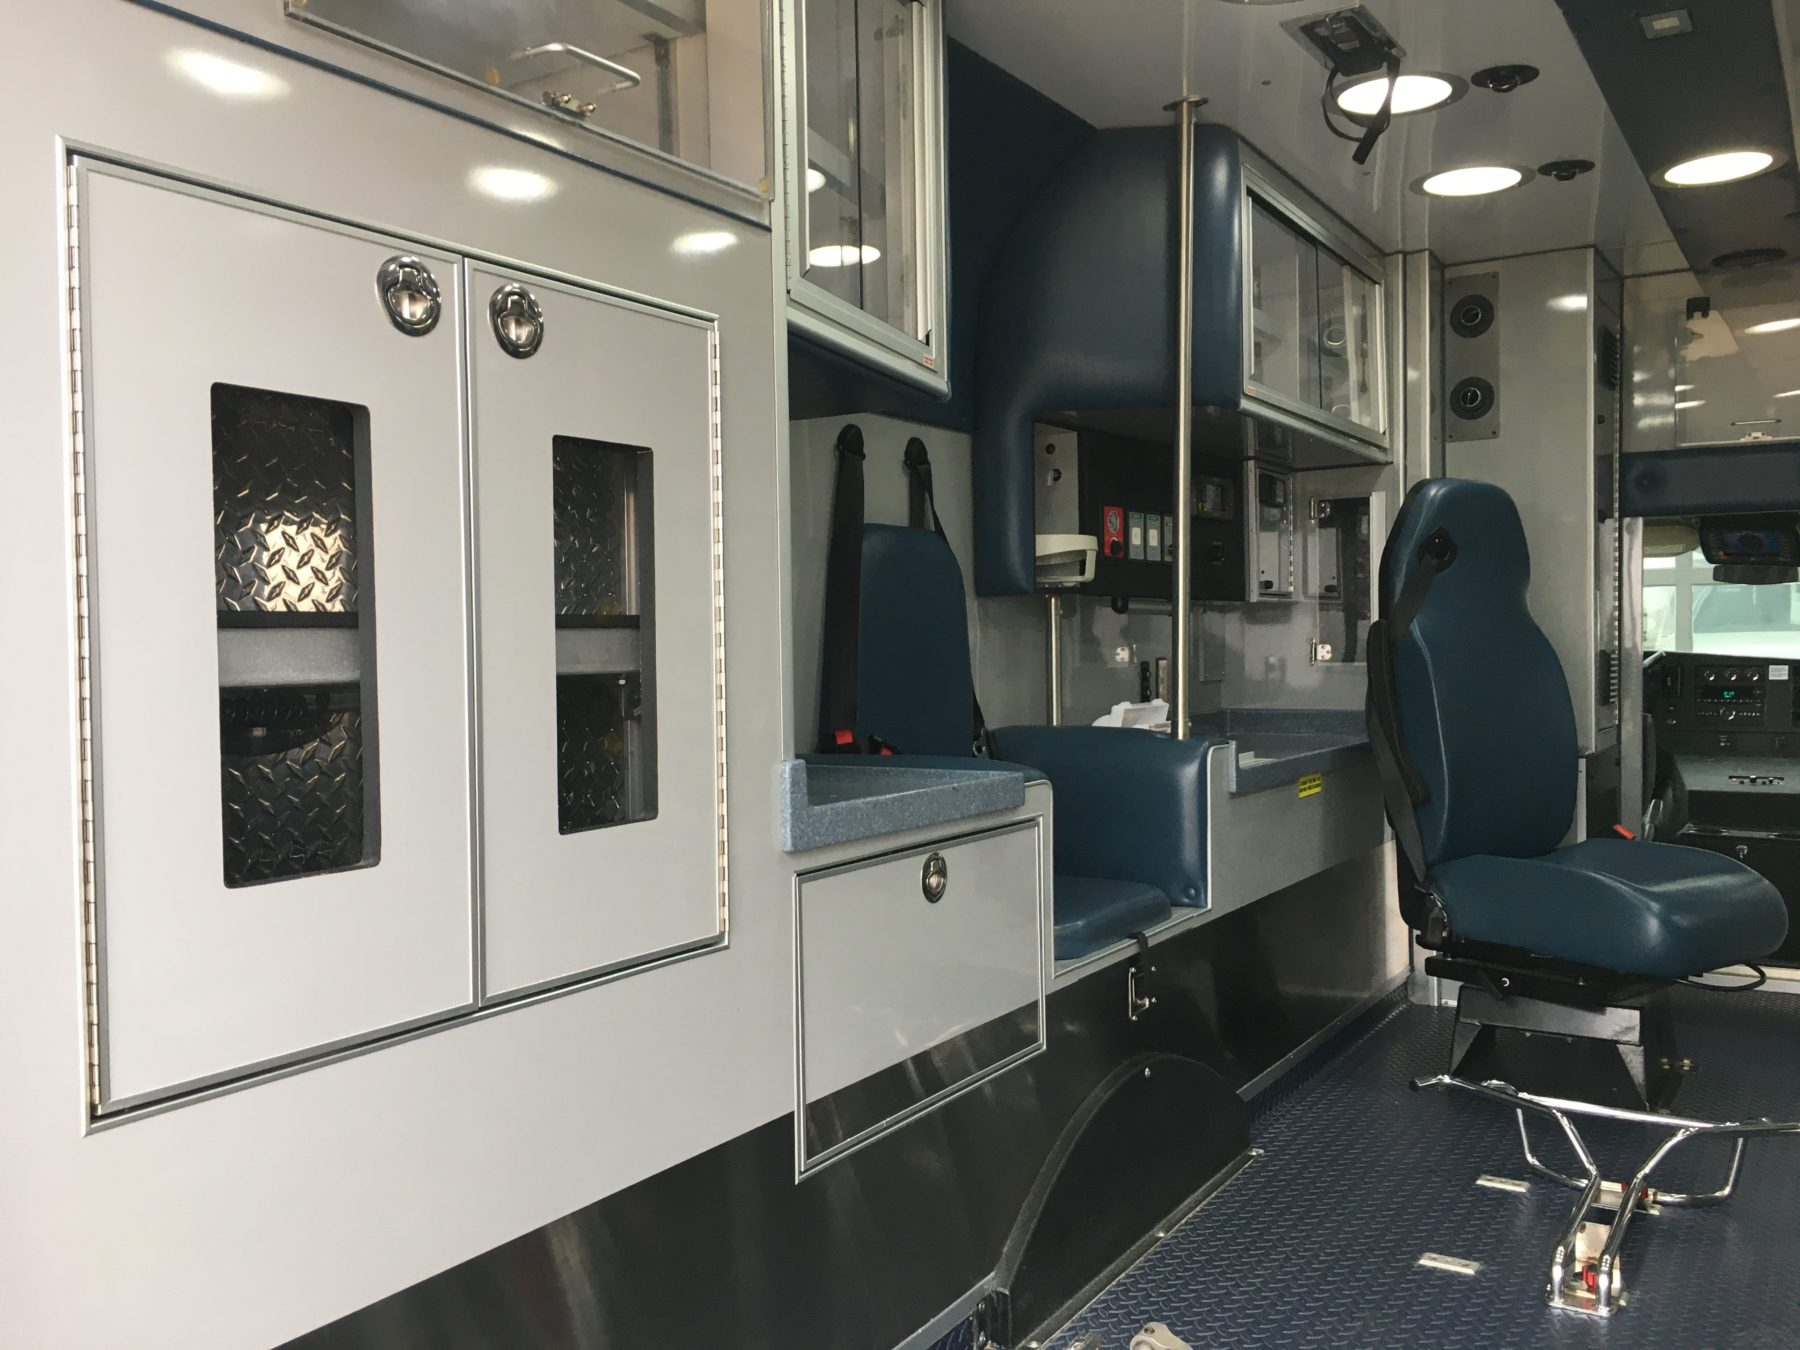 2012 Chevrolet G4500 Type 3 Ambulance For Sale – Picture 11